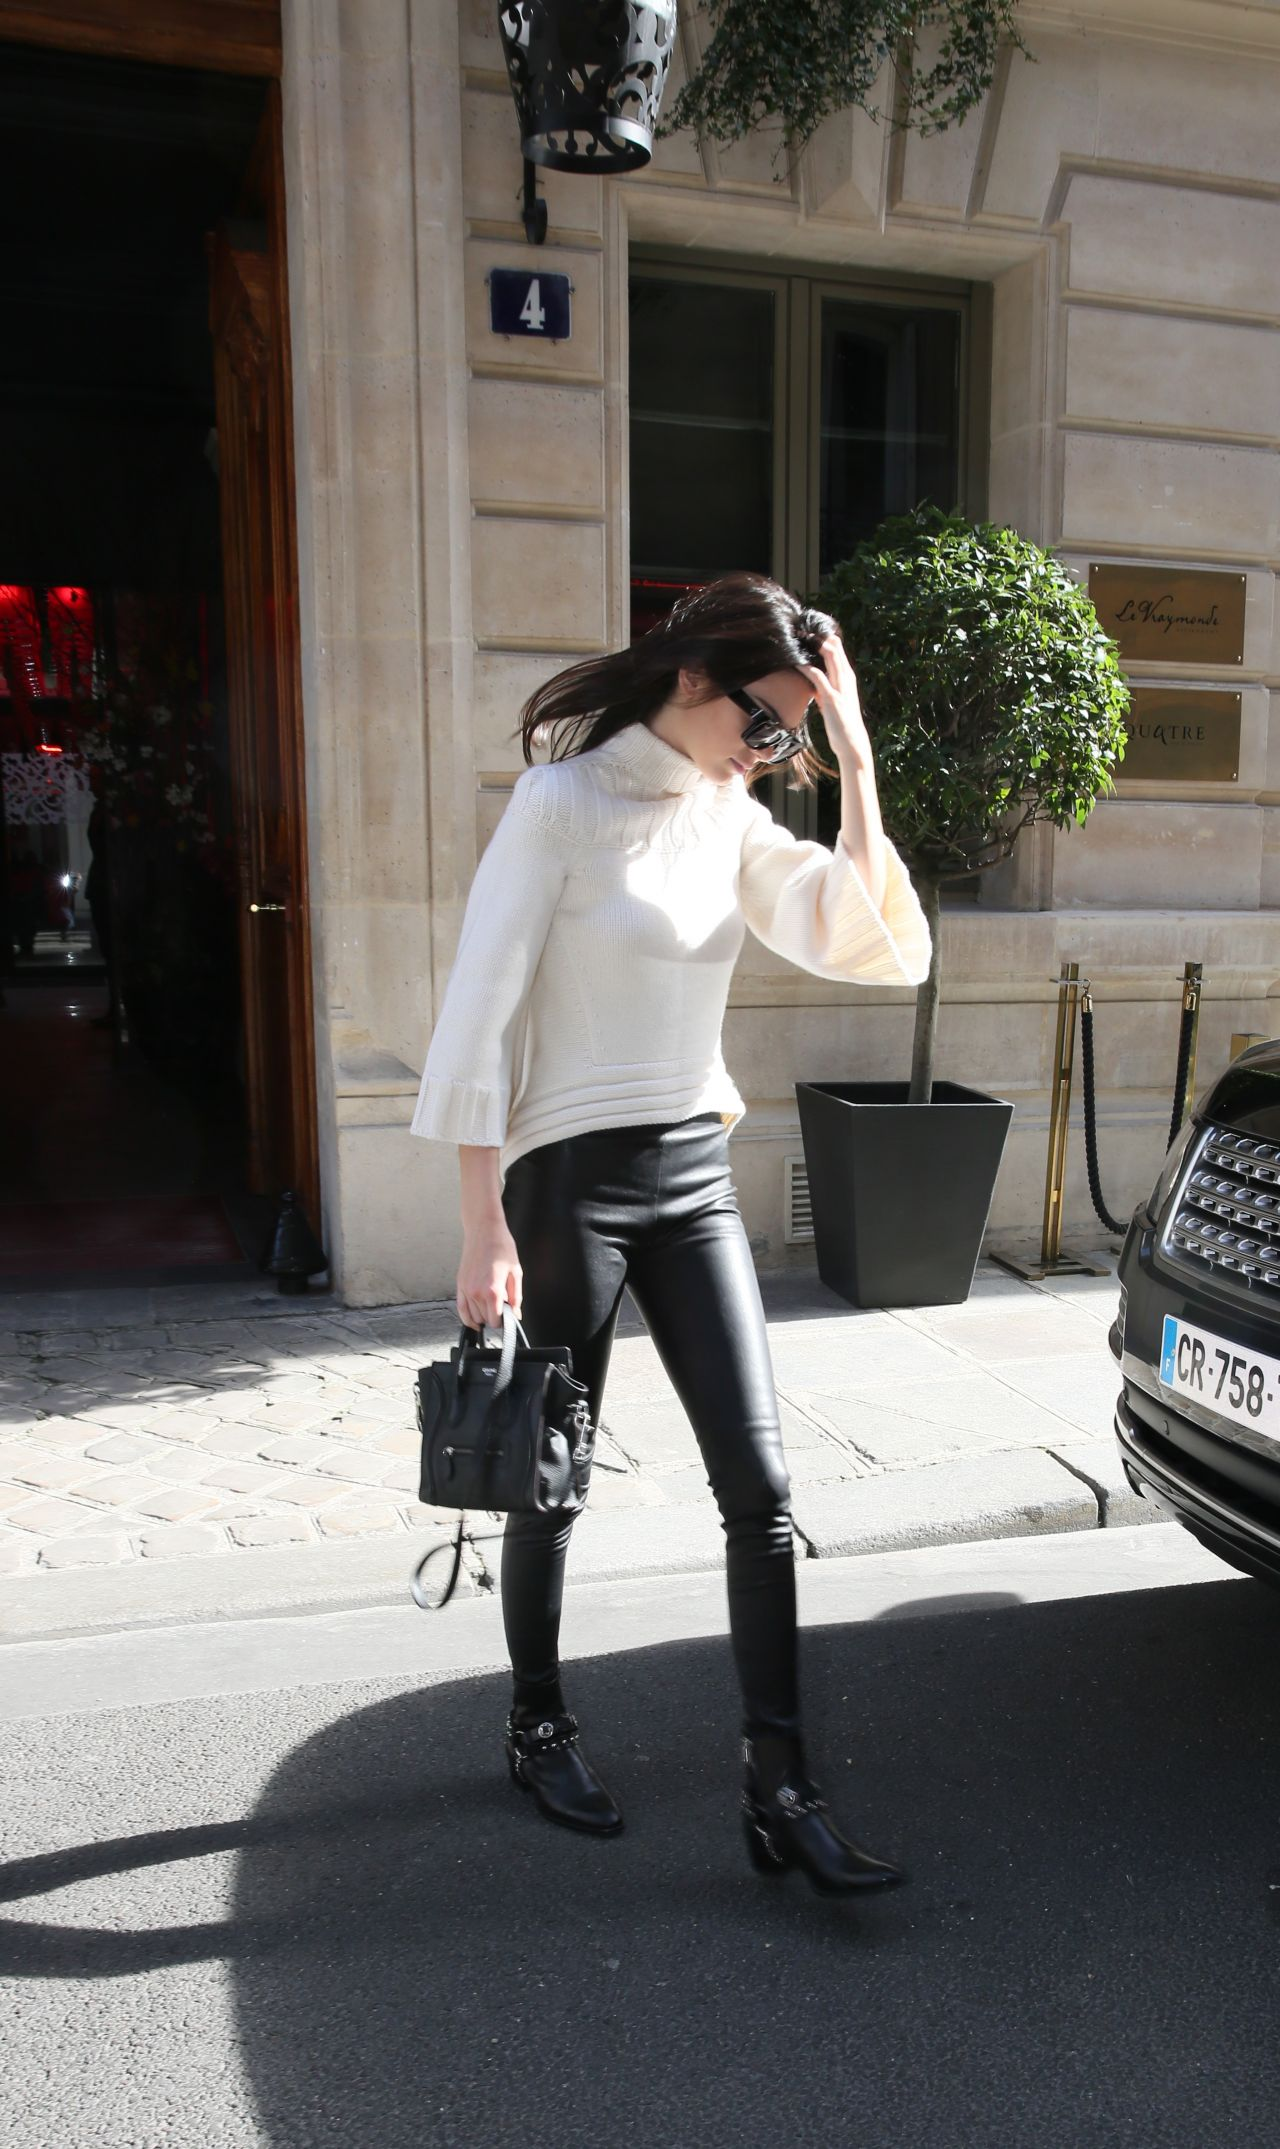 kendall-jenner-leaving-the-celine-s-store-to-go-to-the-buddha-bar-in-paris-march-2015_